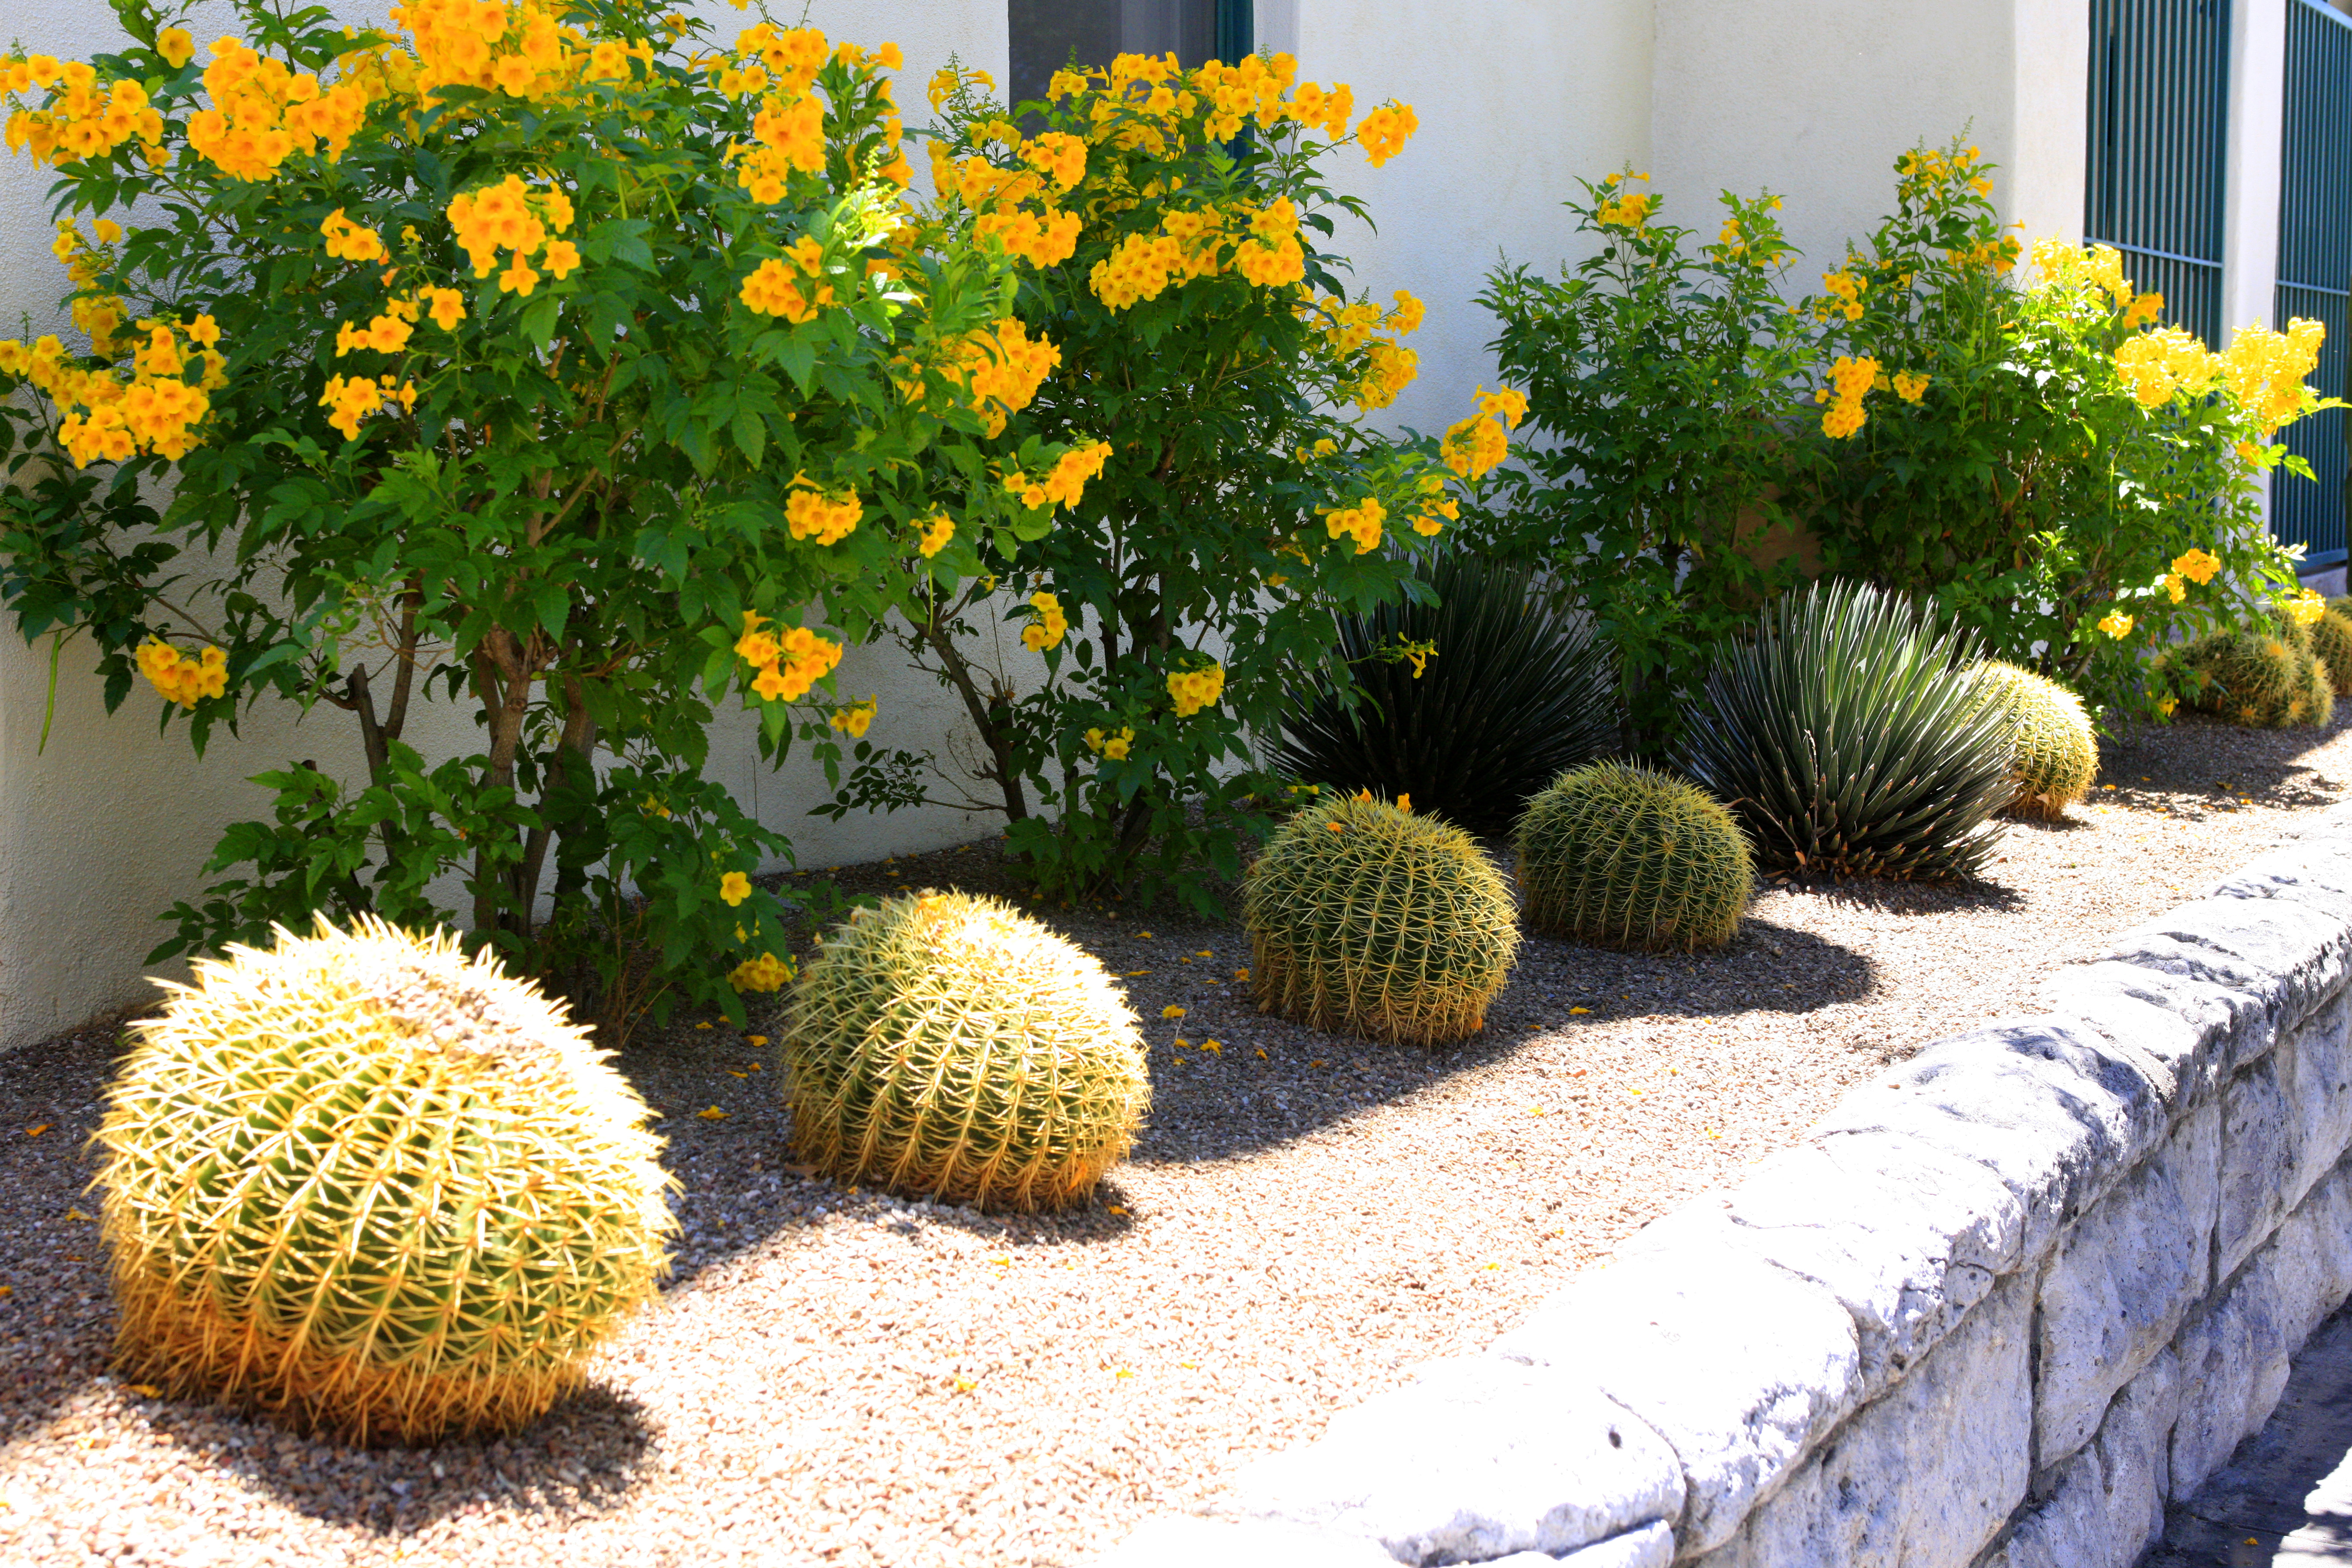 Barrel Cacti and other strubs along the outside wall of the Pueblo Hotel in downtown Tucson AZ